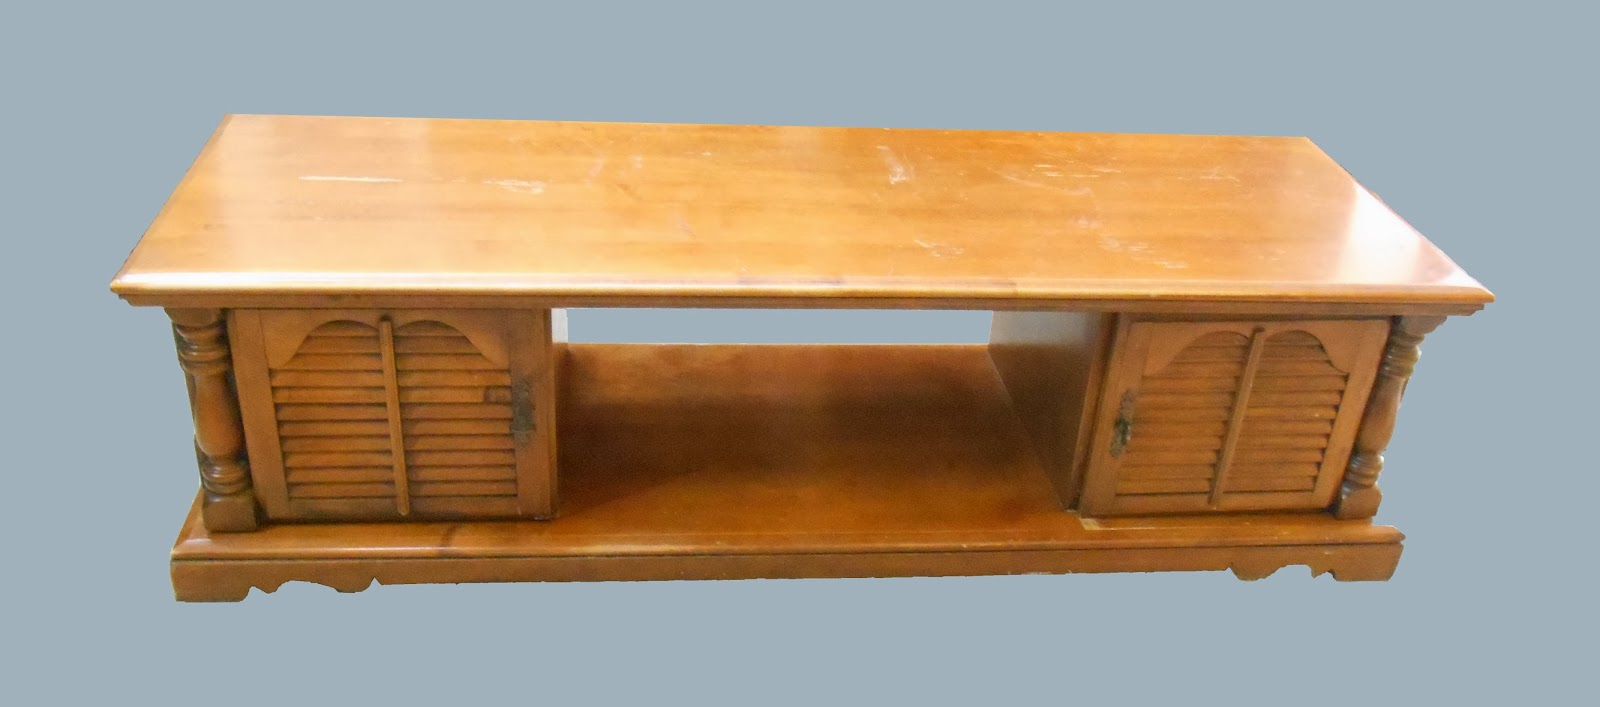 Uhuru Furniture Collectibles Traditional Style Coffee Table Sold